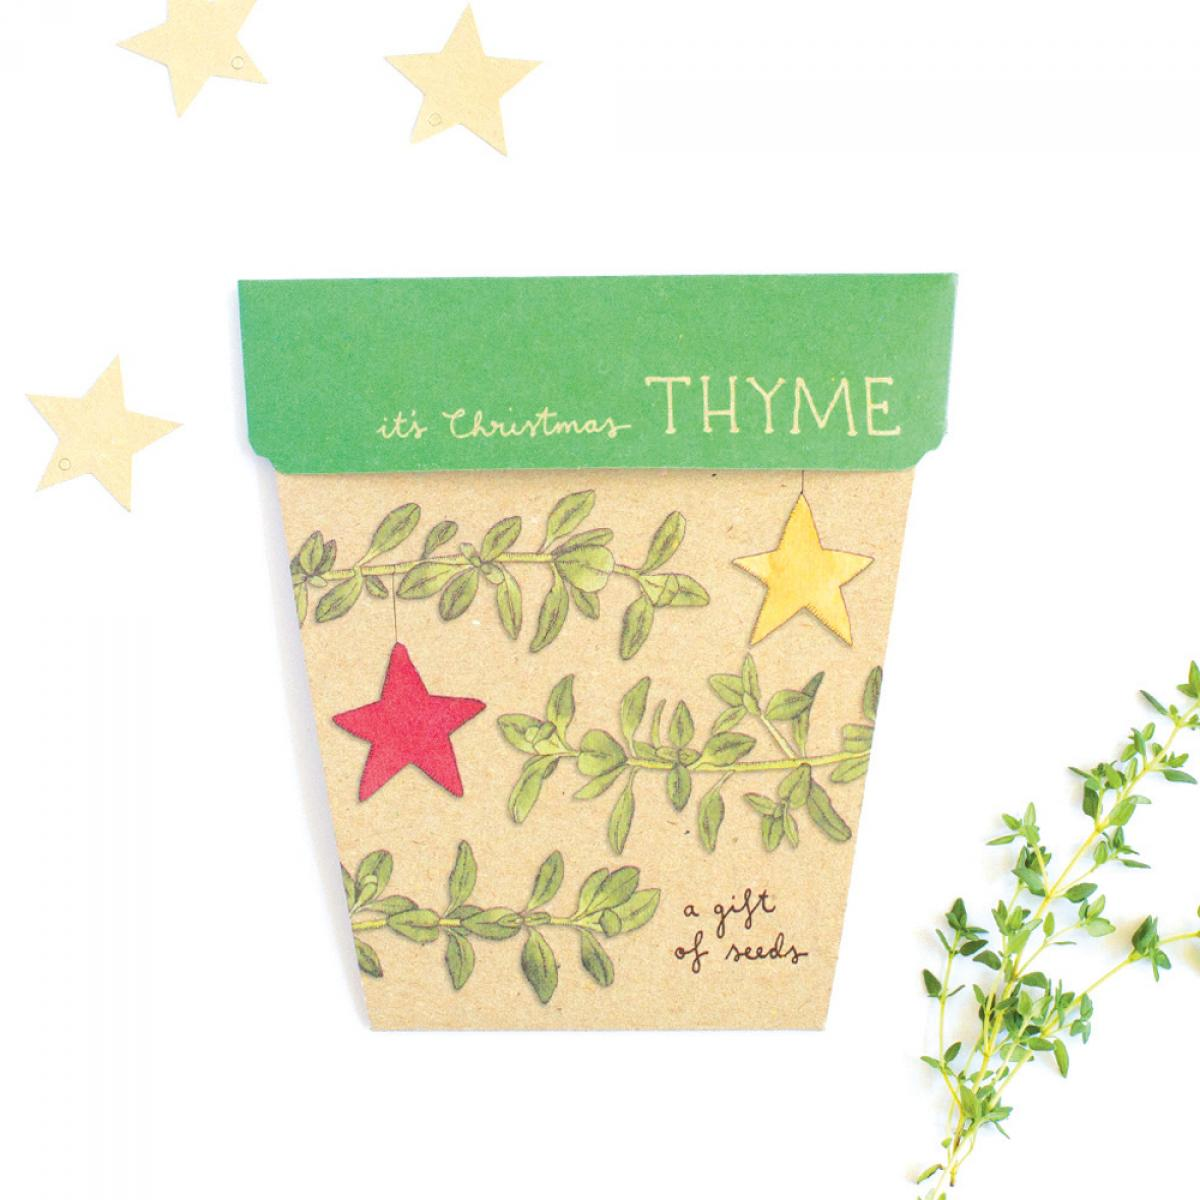 Sow 'n Sow Gift Card with Seeds - Christmas Thyme - Gift of Seeds - Throw Some Seeds - Australian gardening gifts and eco products online!